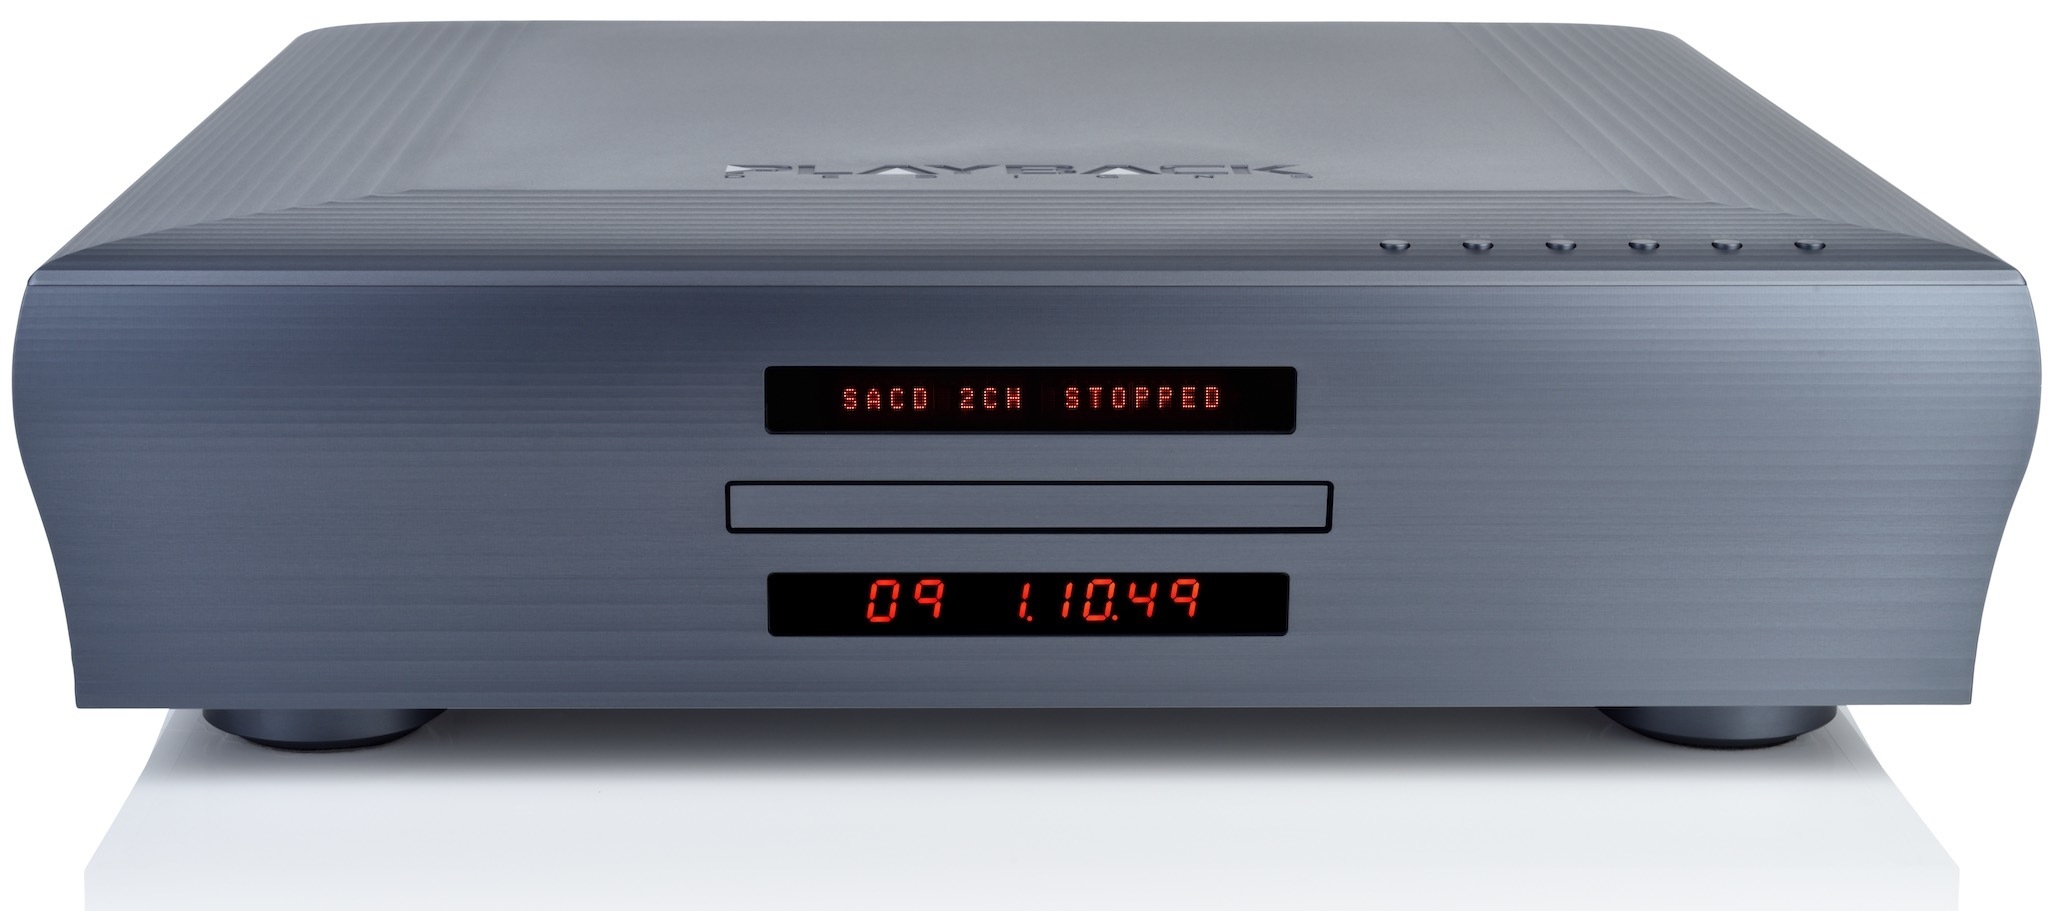 Playback Designs MPS-8 CD/SACD player, DAC and Streamer Full Review